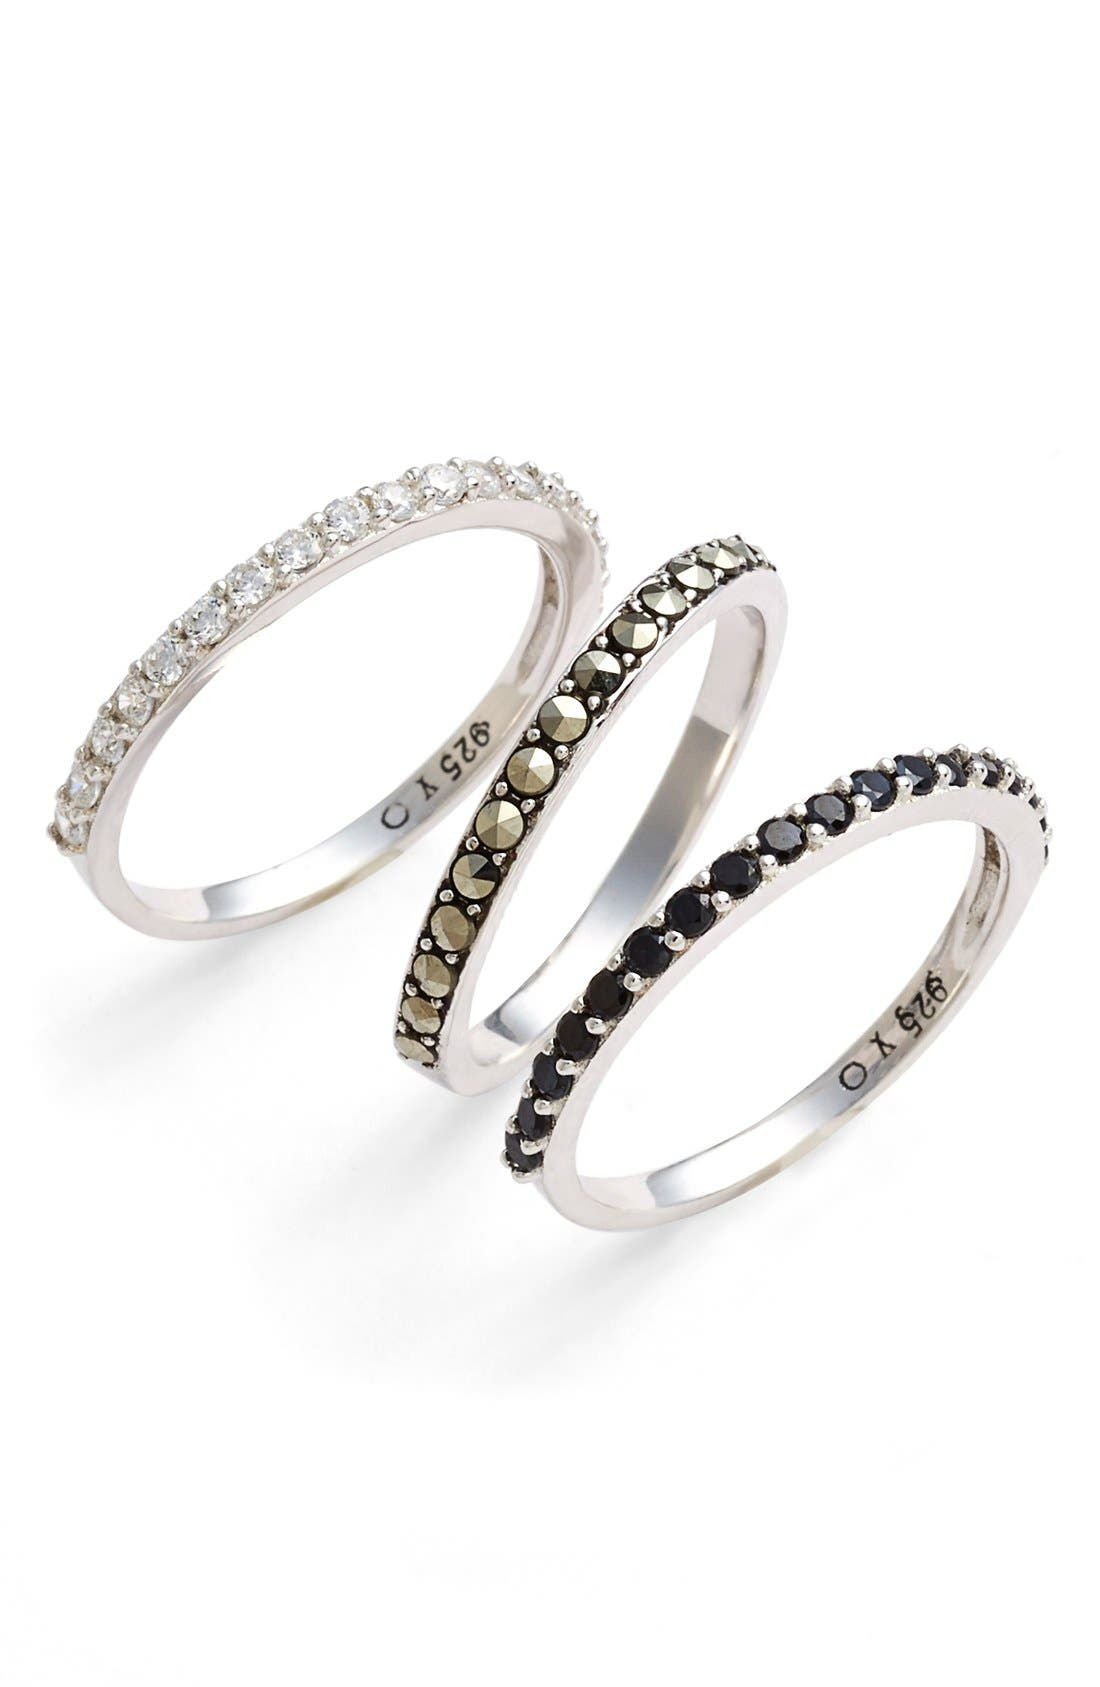 Main Image - Judith Jack 'Rings & Things' Stackable Rings (Set of 3)